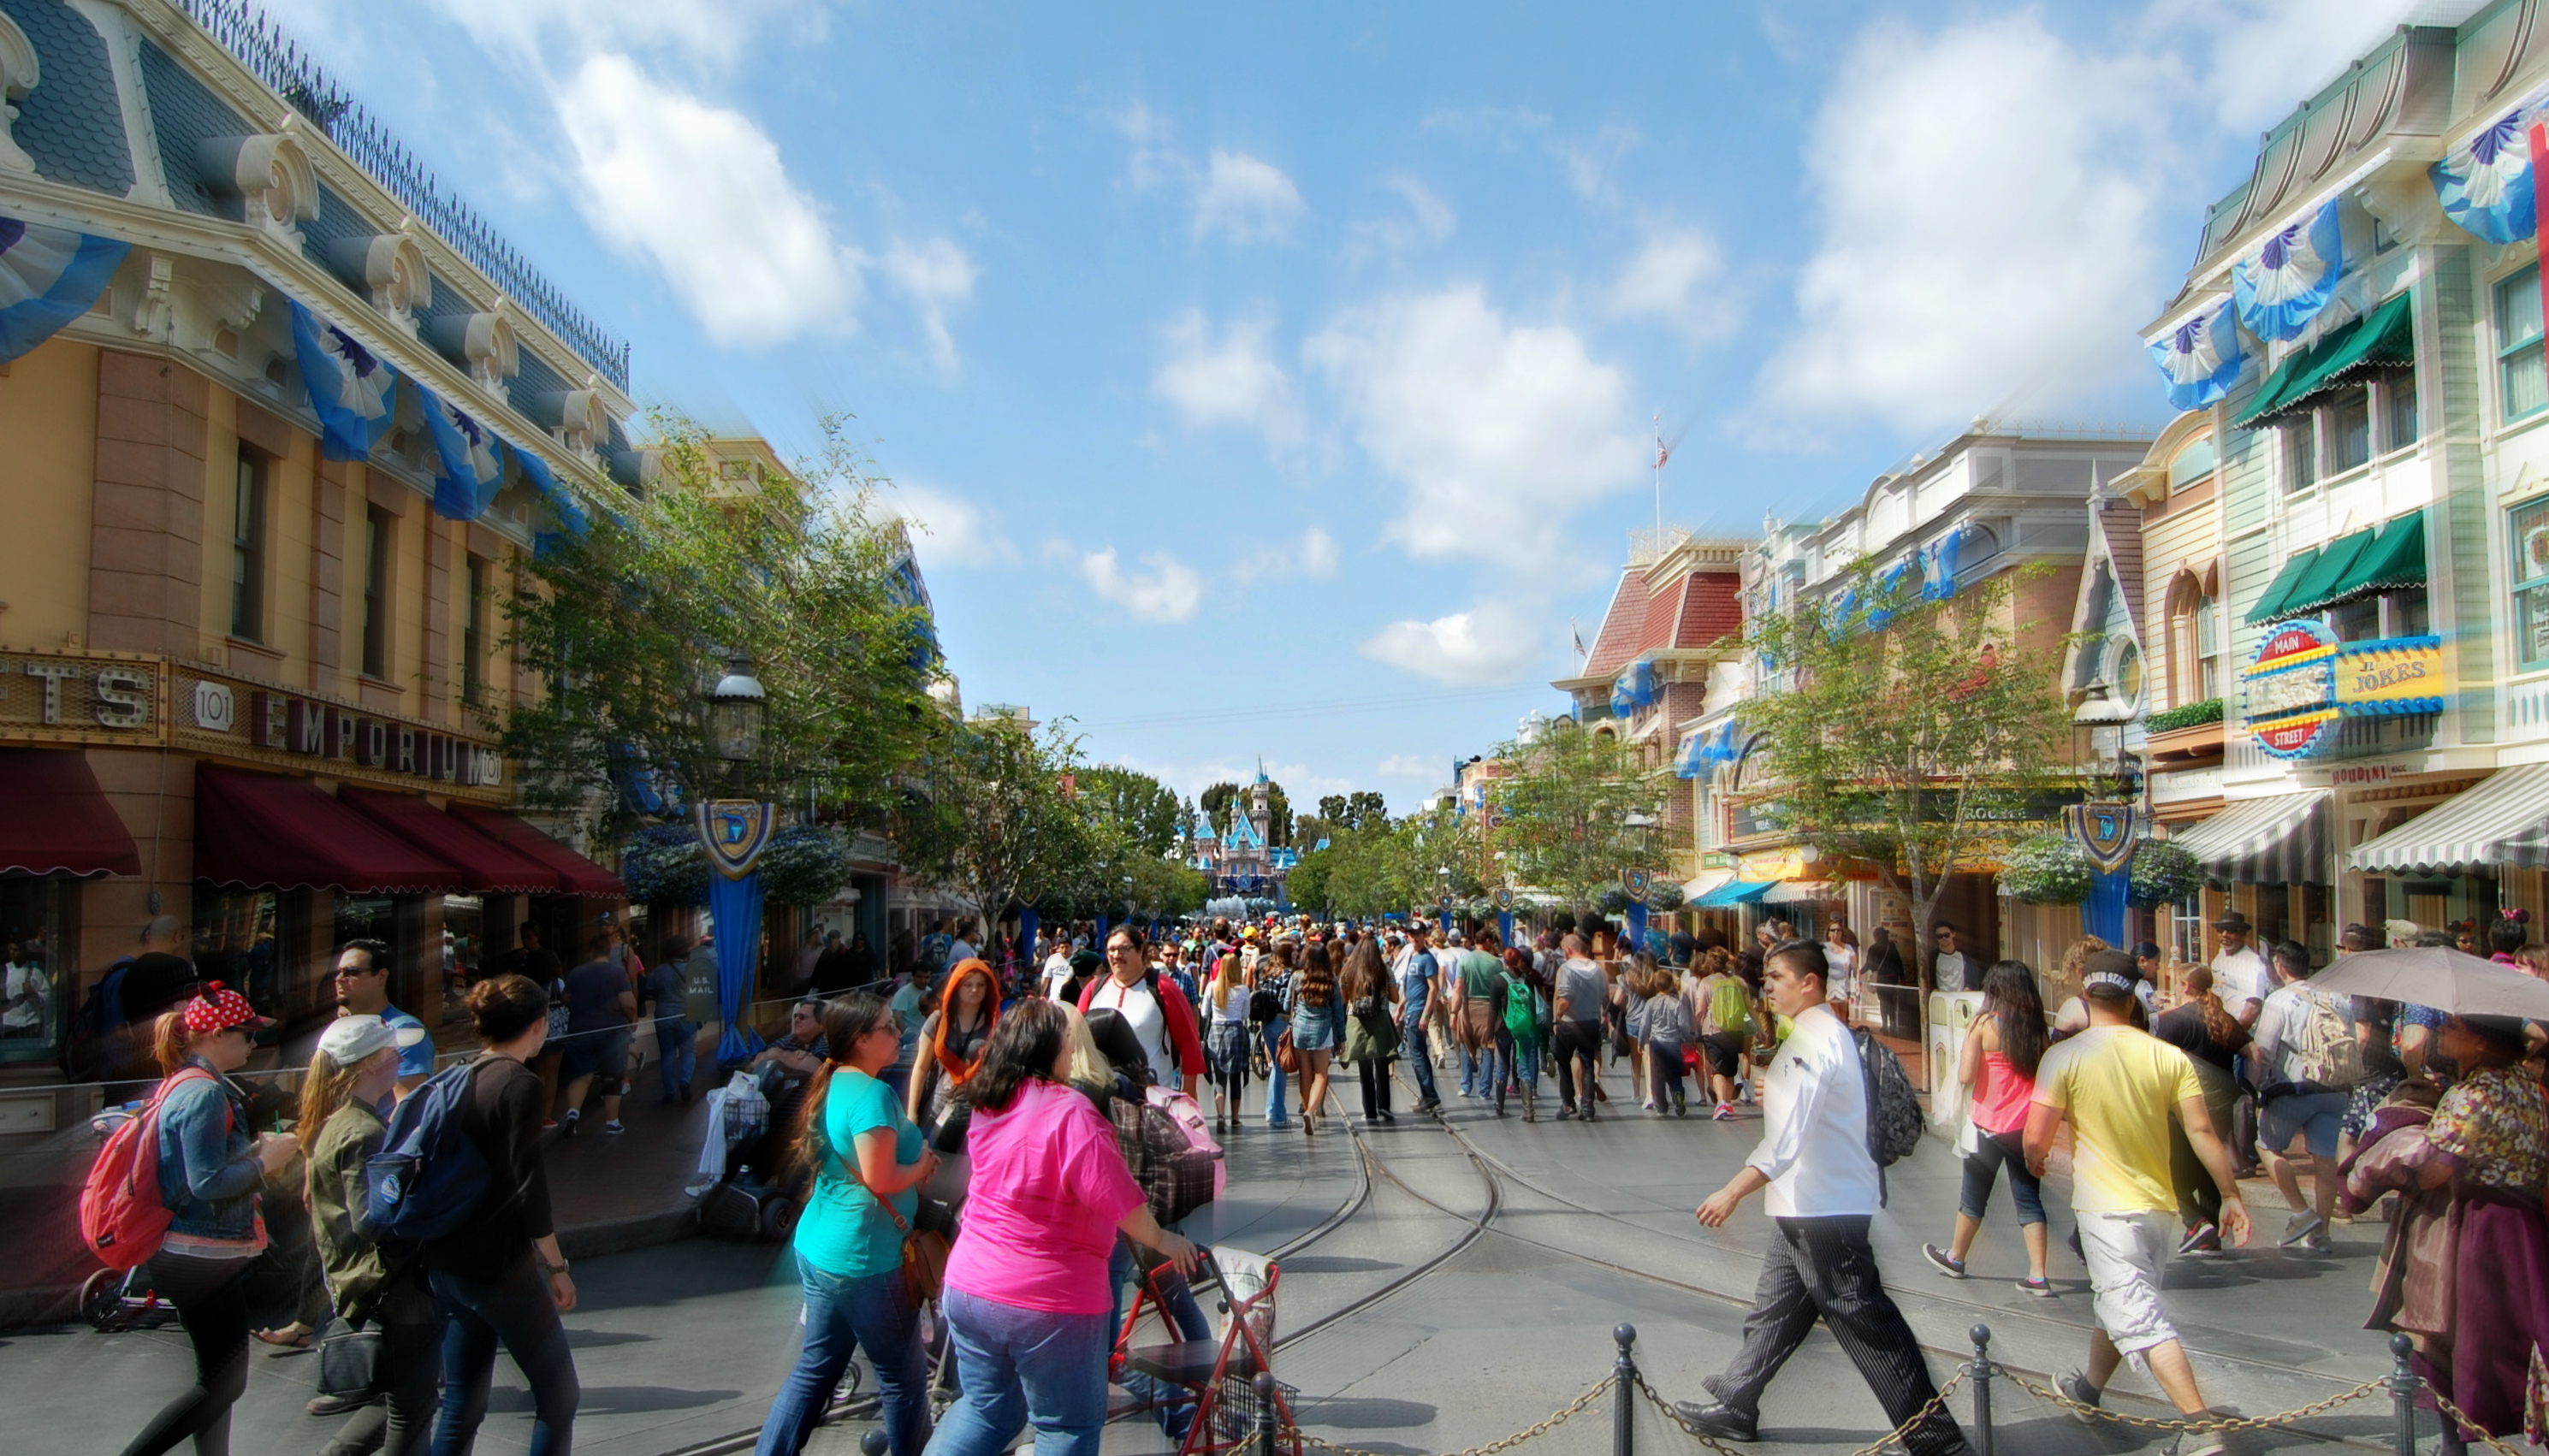 Disneyland's version of Main Street, U.S.A.